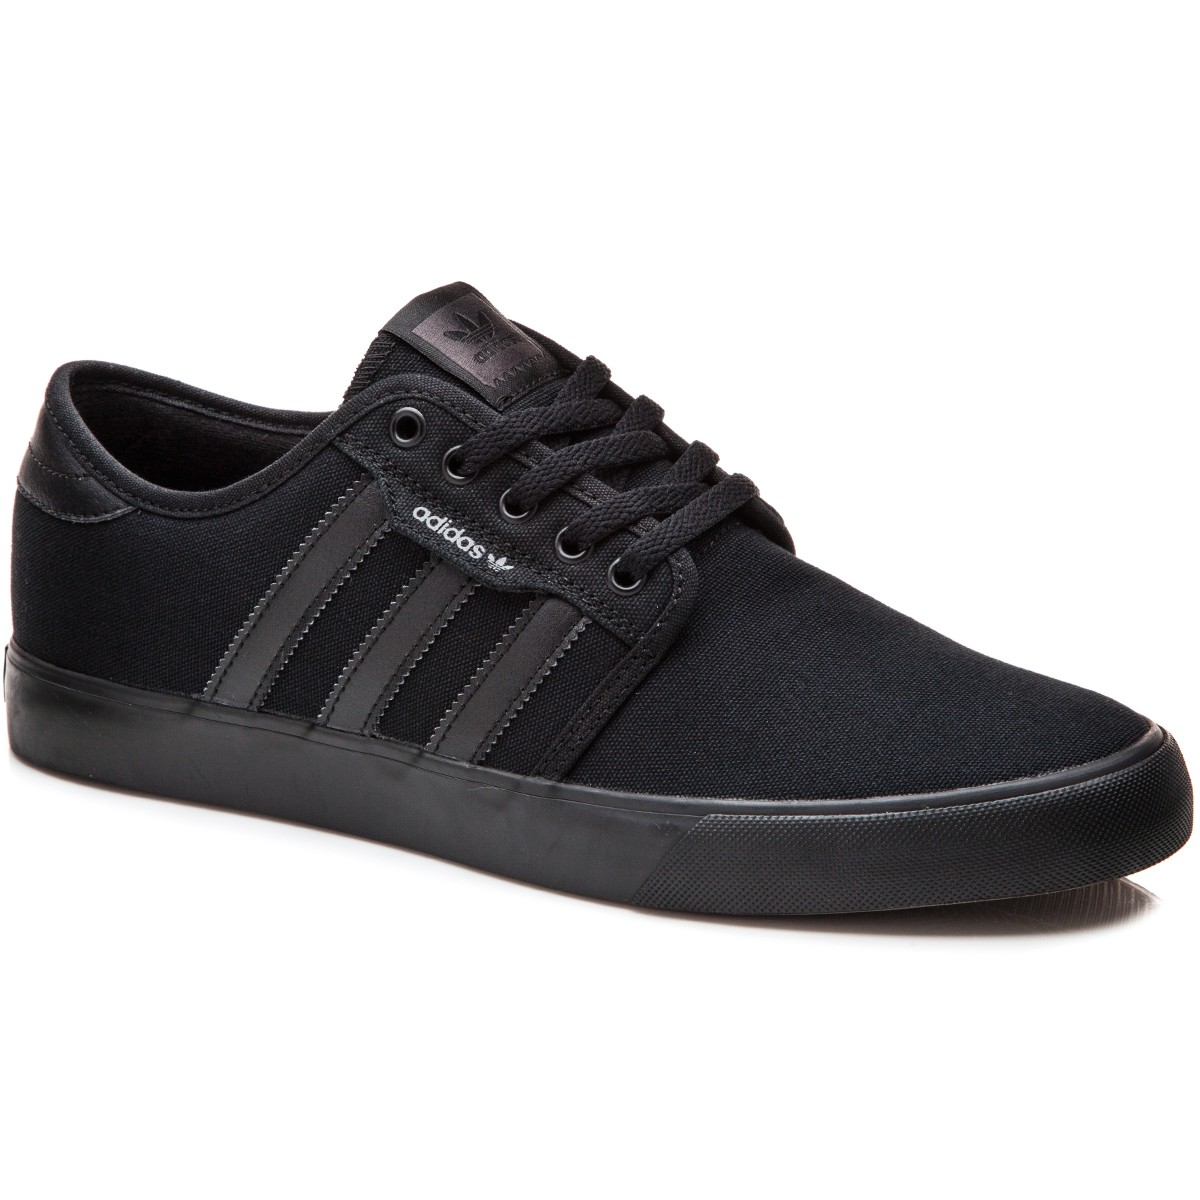 Adidas Seeley Shoes - Black/Black/Black - 6.0